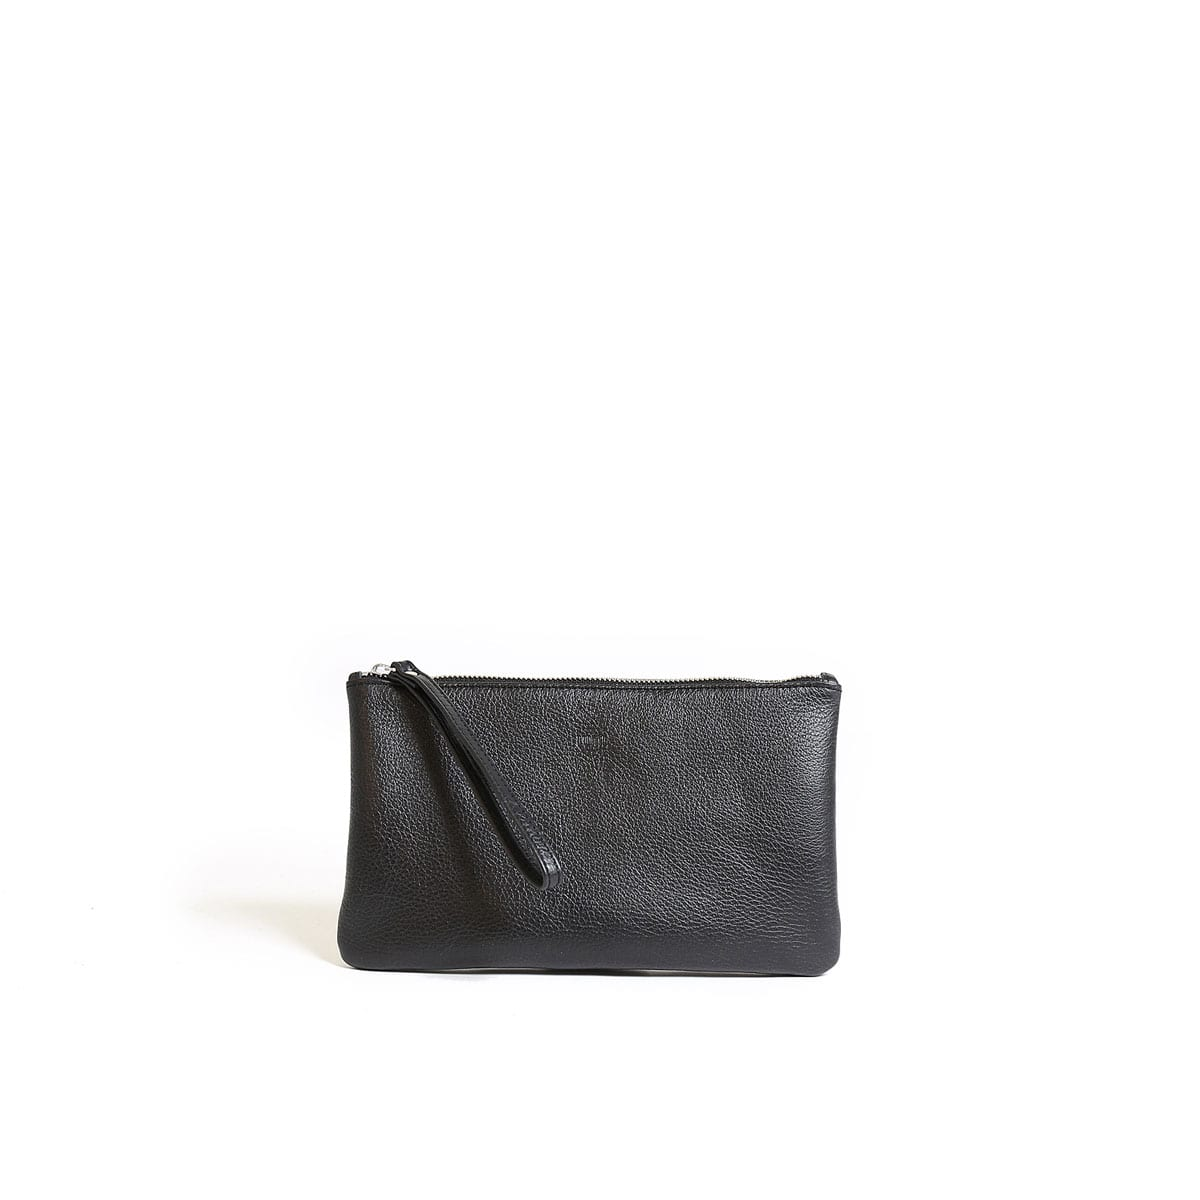 Black Clutch. Enjoy the delicate beauty of a black clutch. Compact and elegant, clutch handbags are ideal for evening wear or simply a smaller alternative to regular sized purses. Find clutches with golden chain handles, glistening sequins and other embellishments to accessorize your attire.